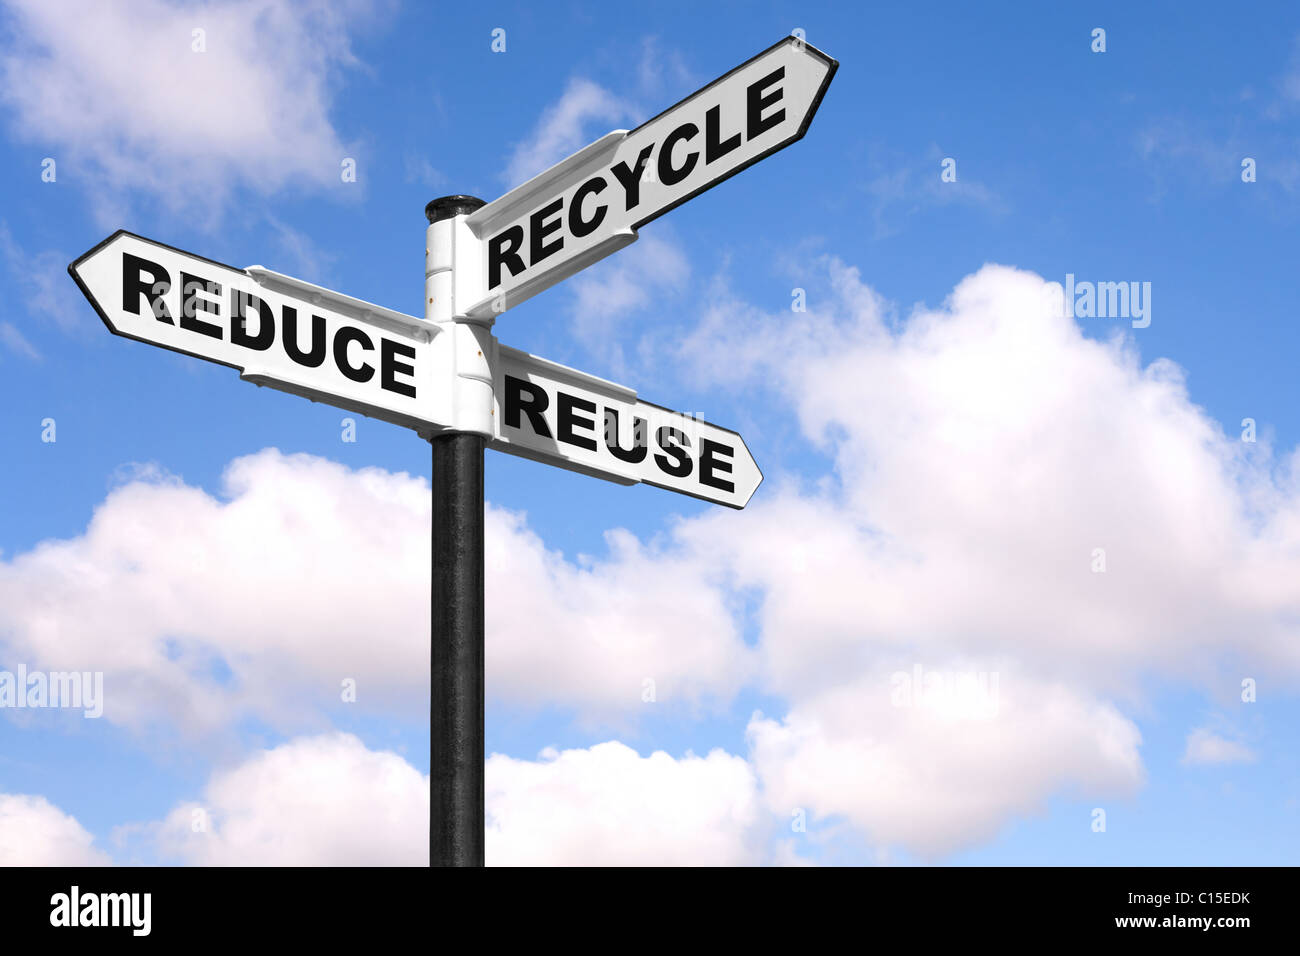 Recycling concept image of a signpost against a sky background with the 3 Rs on the directional arrows, Reduce, - Stock Image